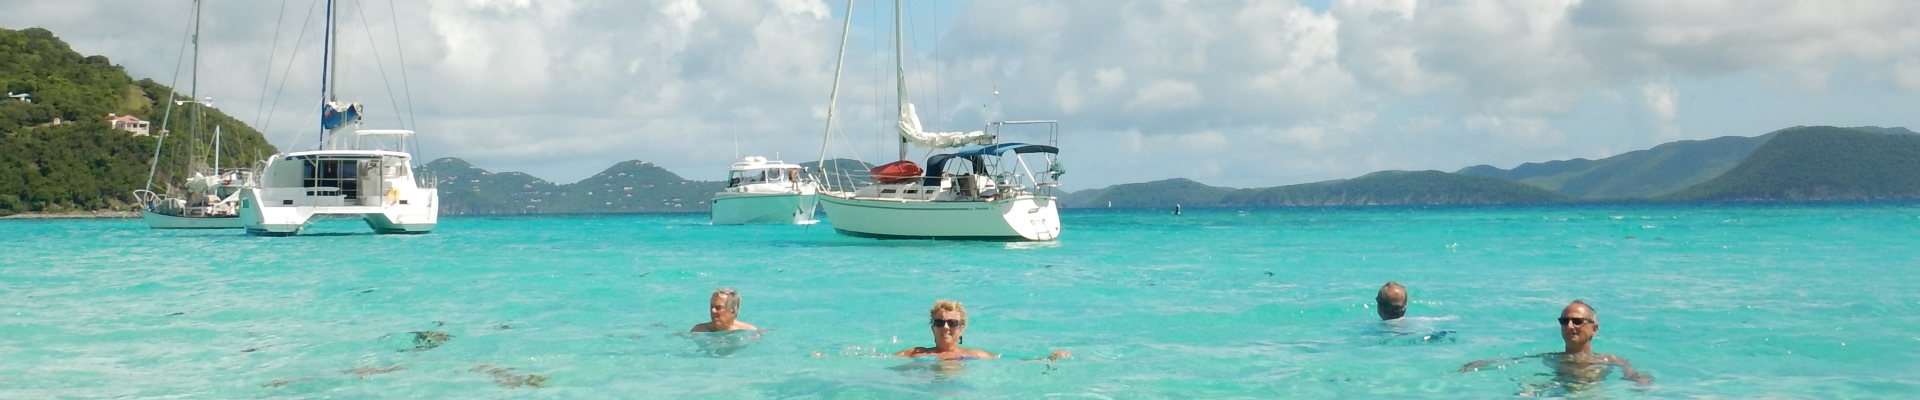 British-Virgin-Islands-White-Bay-Offshore-Sailing-School-Cruise